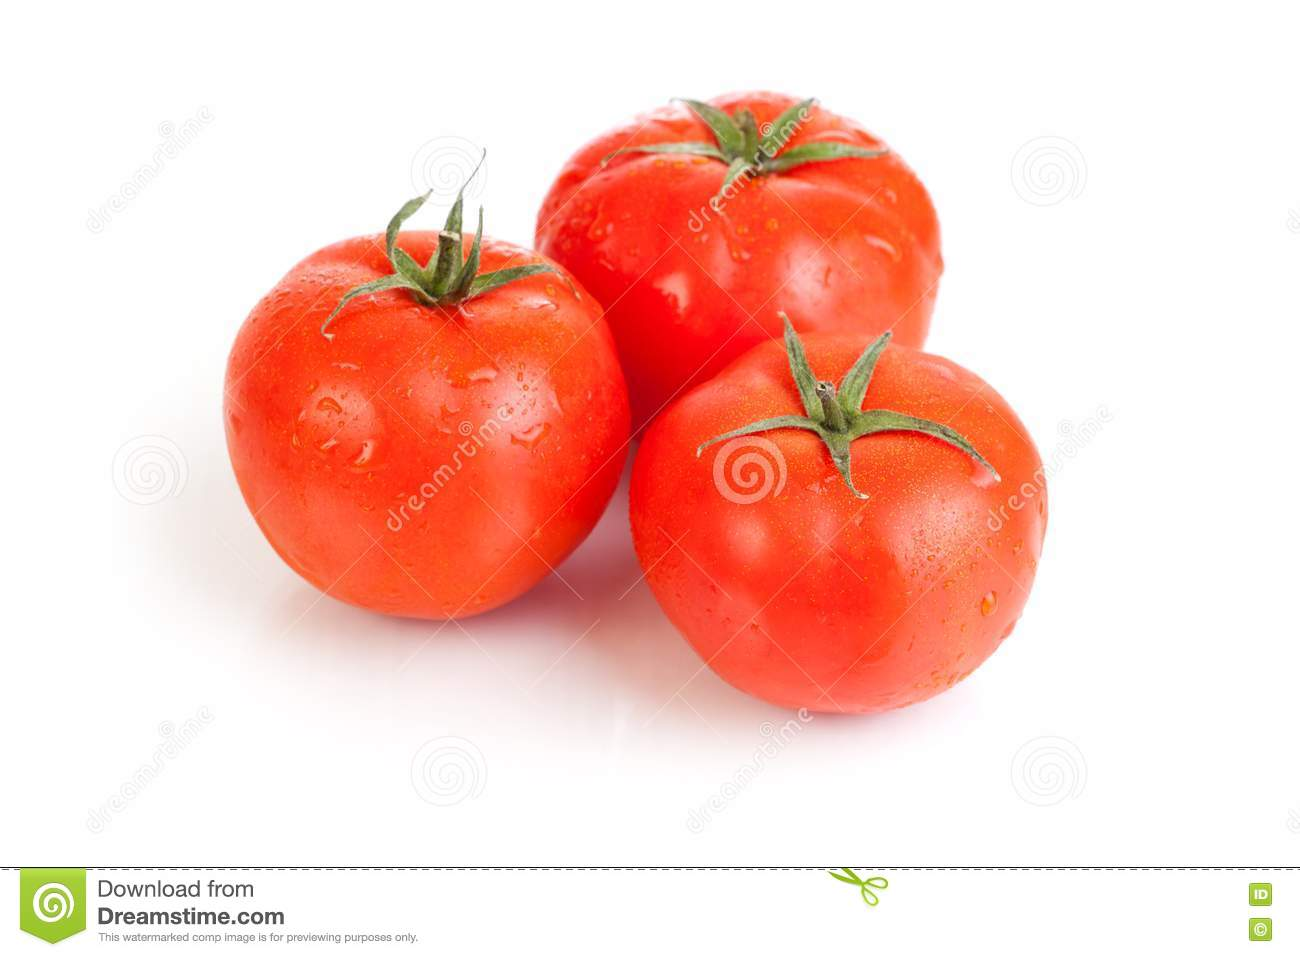 red fruit tomato vegetable or fruit